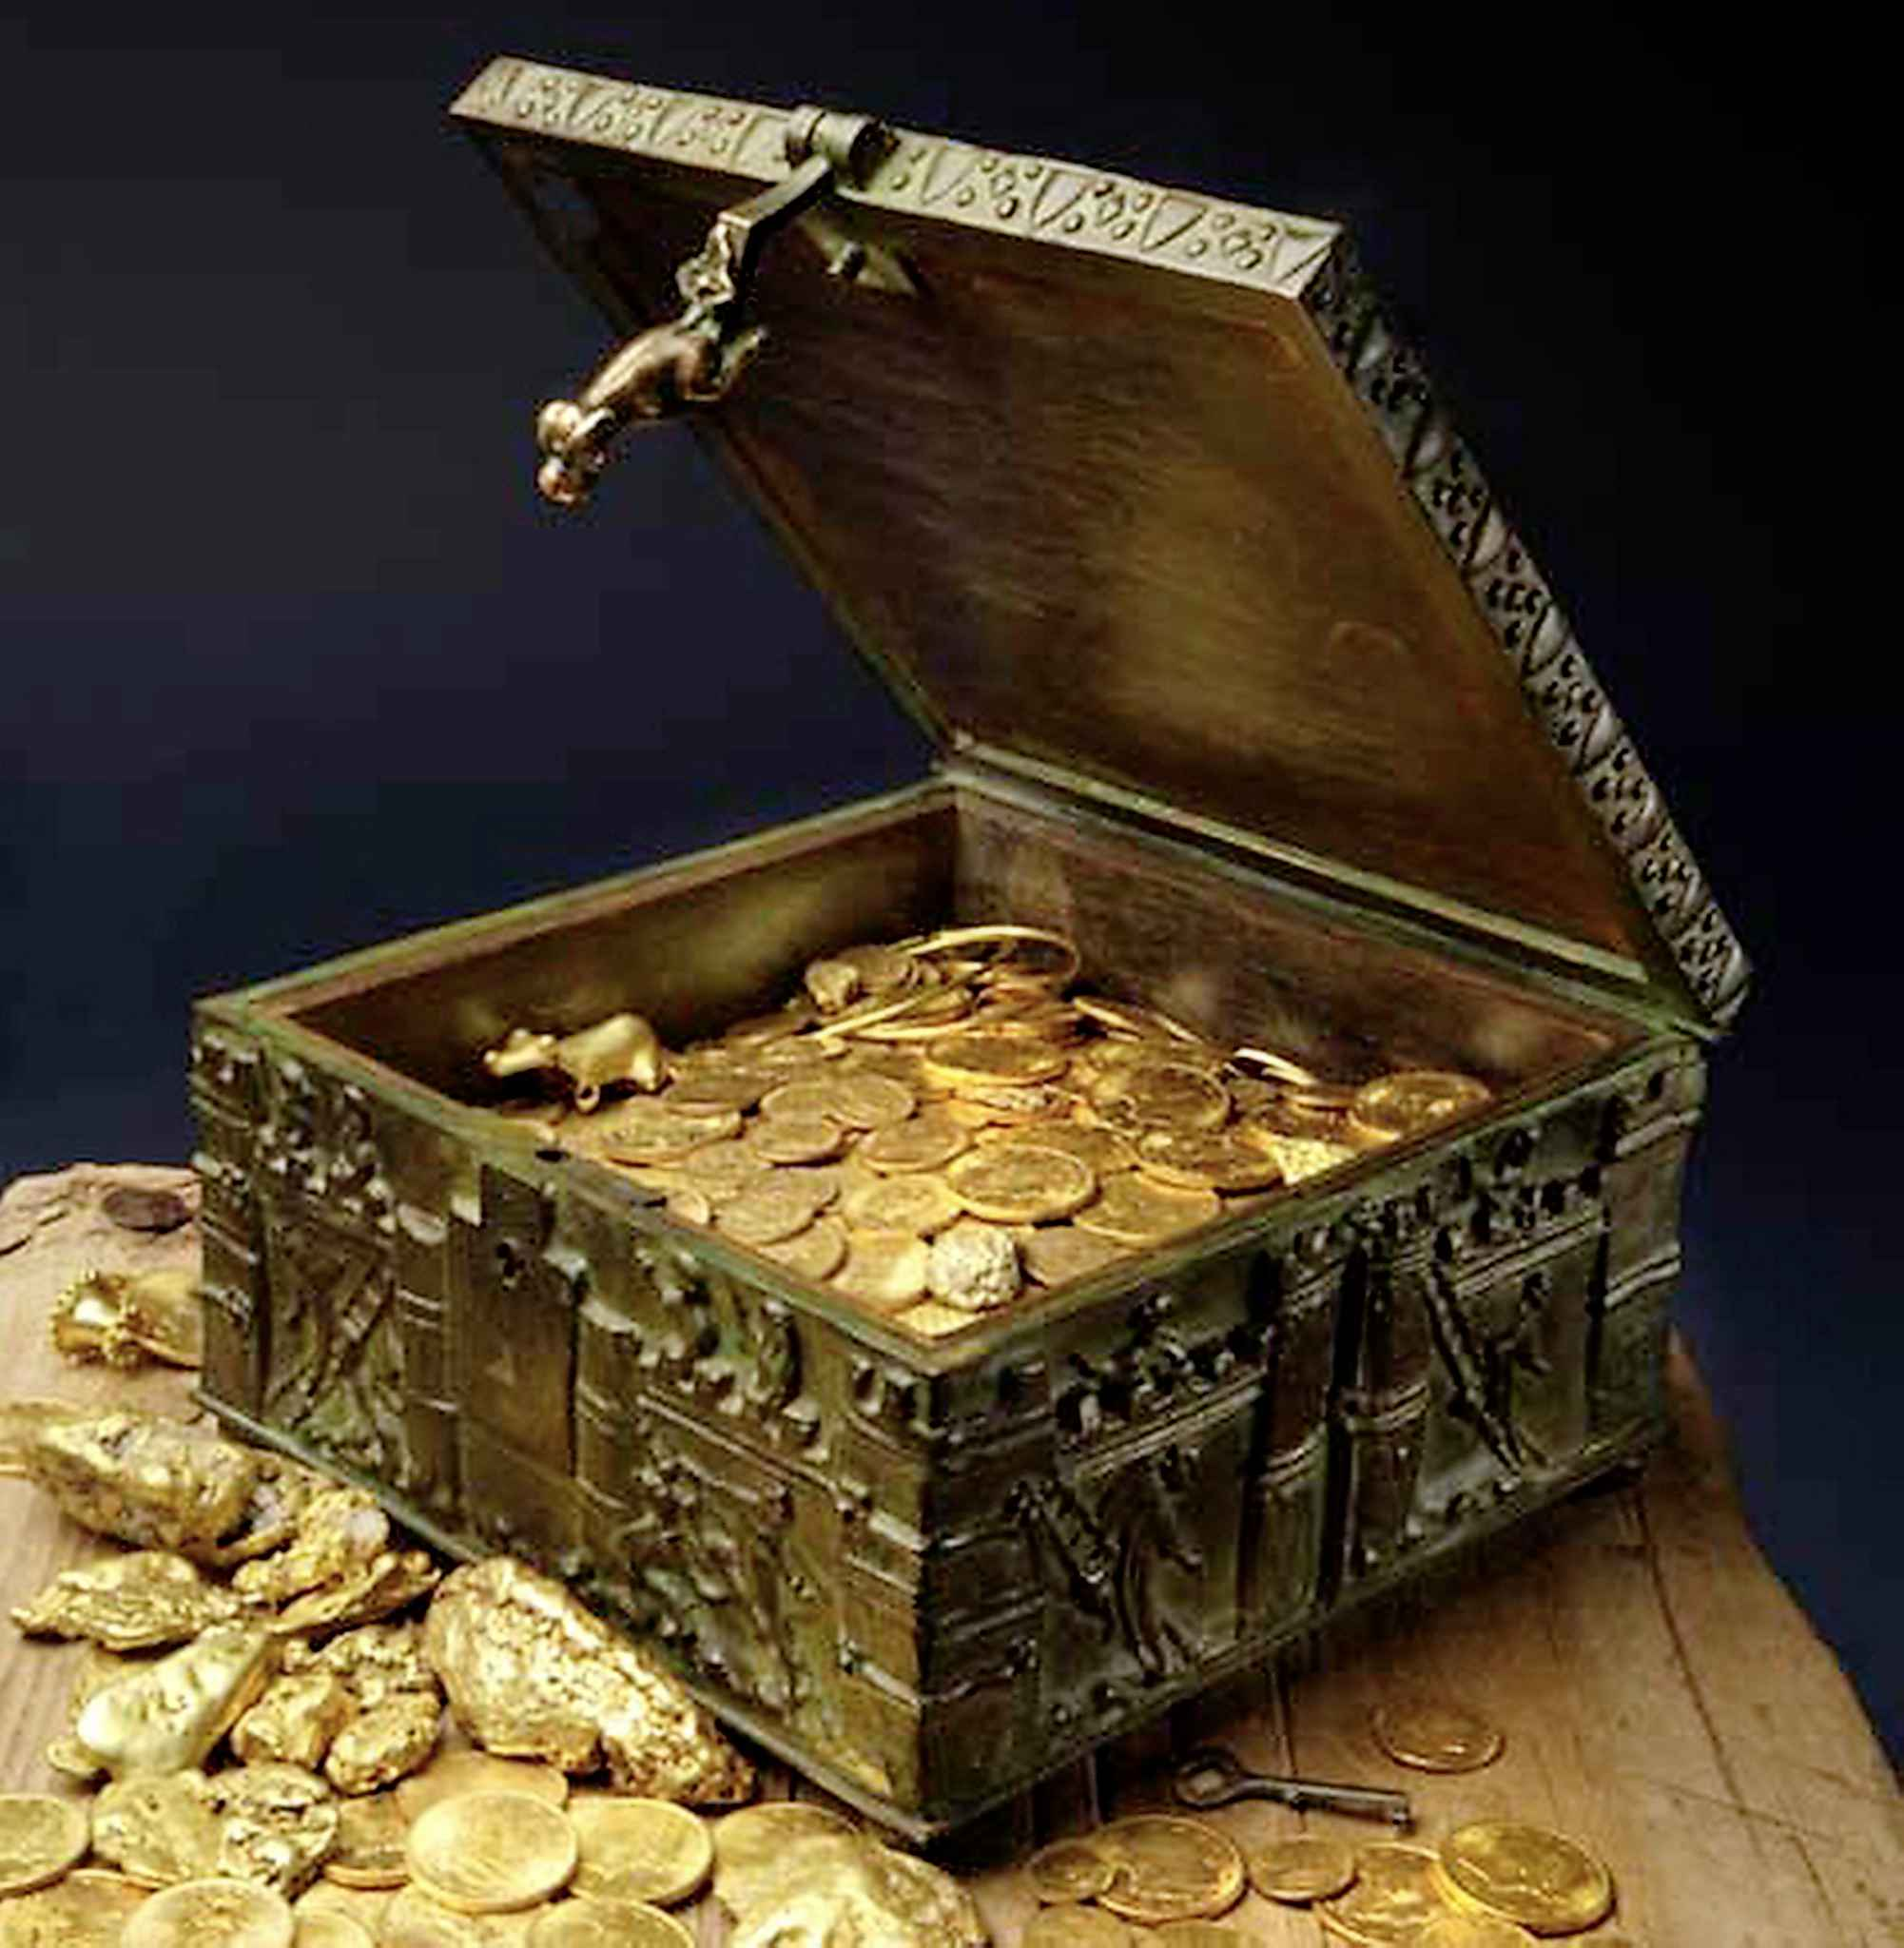 This treasure is silver and gold - Winnipeg Free Press